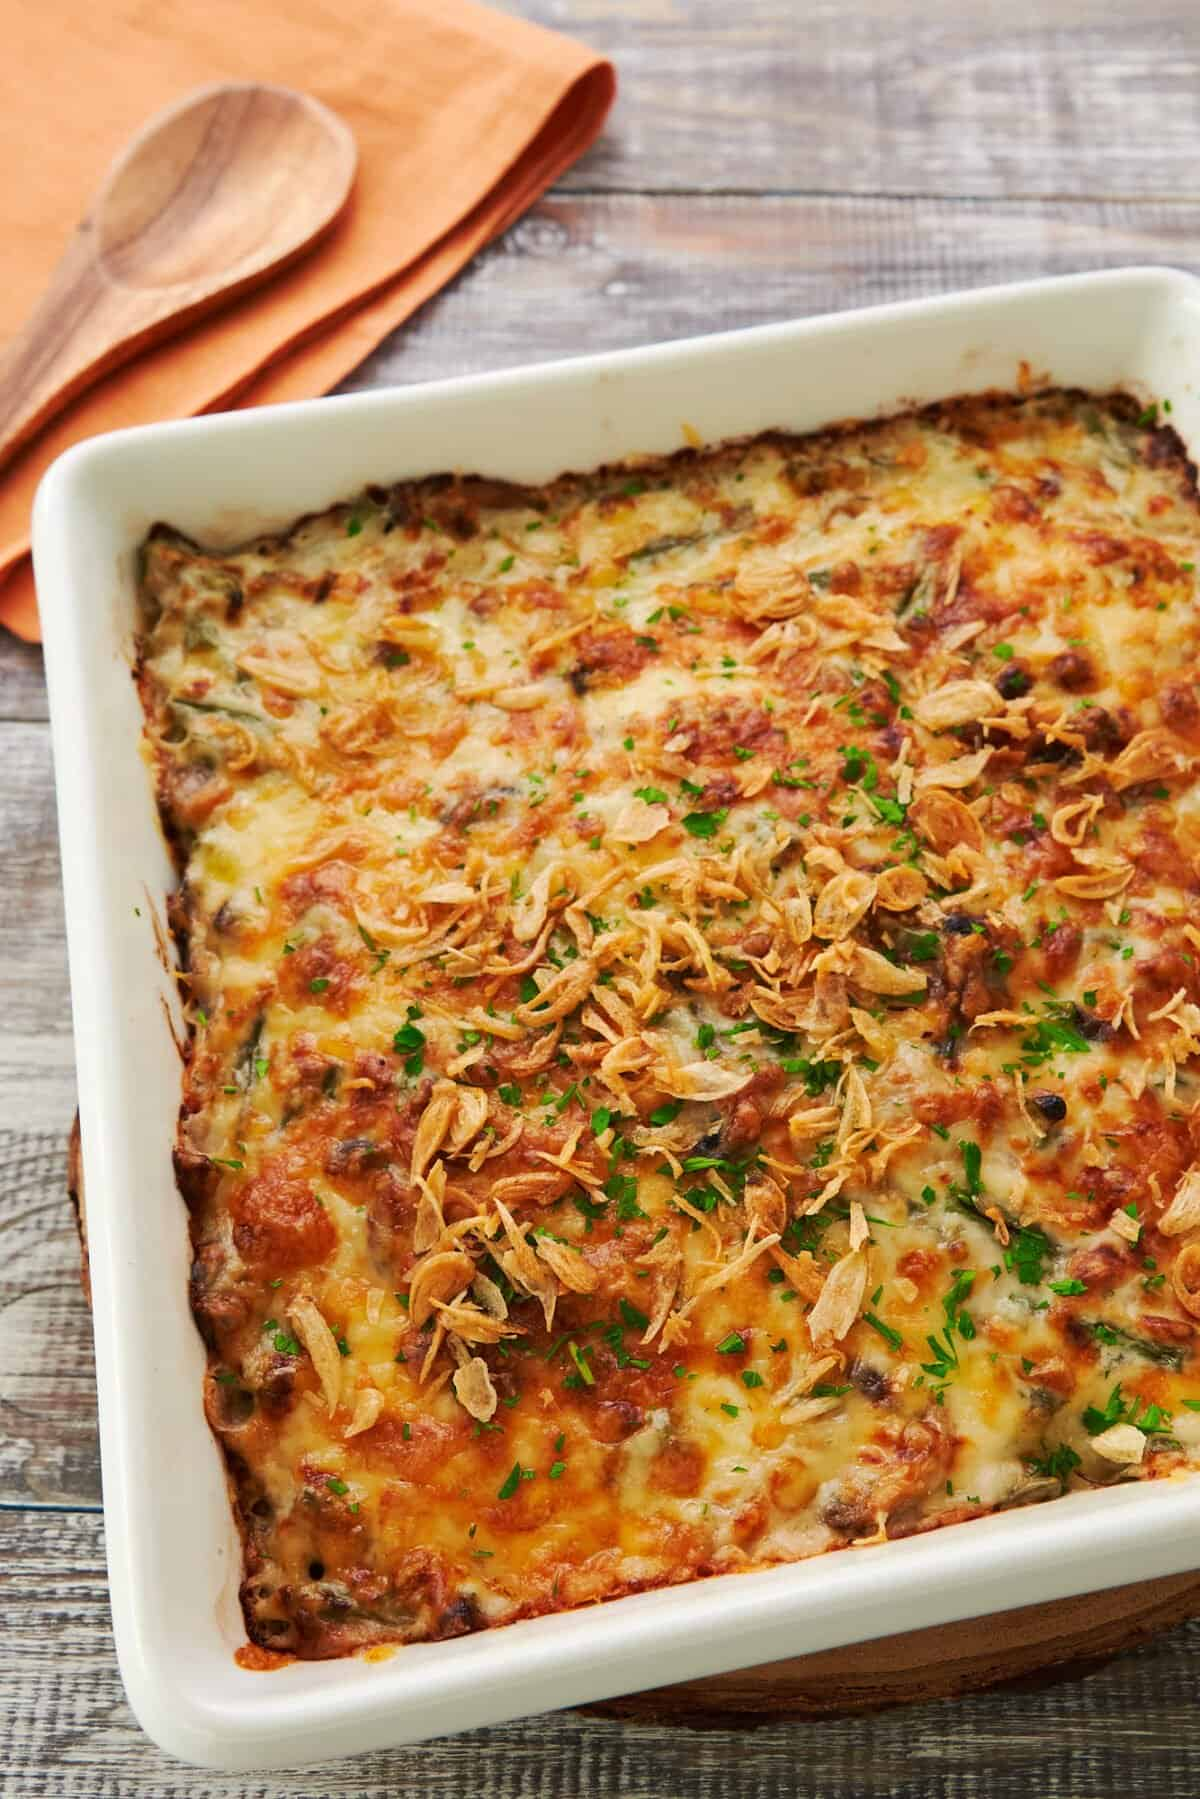 Doria is a comforting Japanese mushroom and rice casserole with a crisp layer of browned cheese covering a molten sea of bechamel sauce.